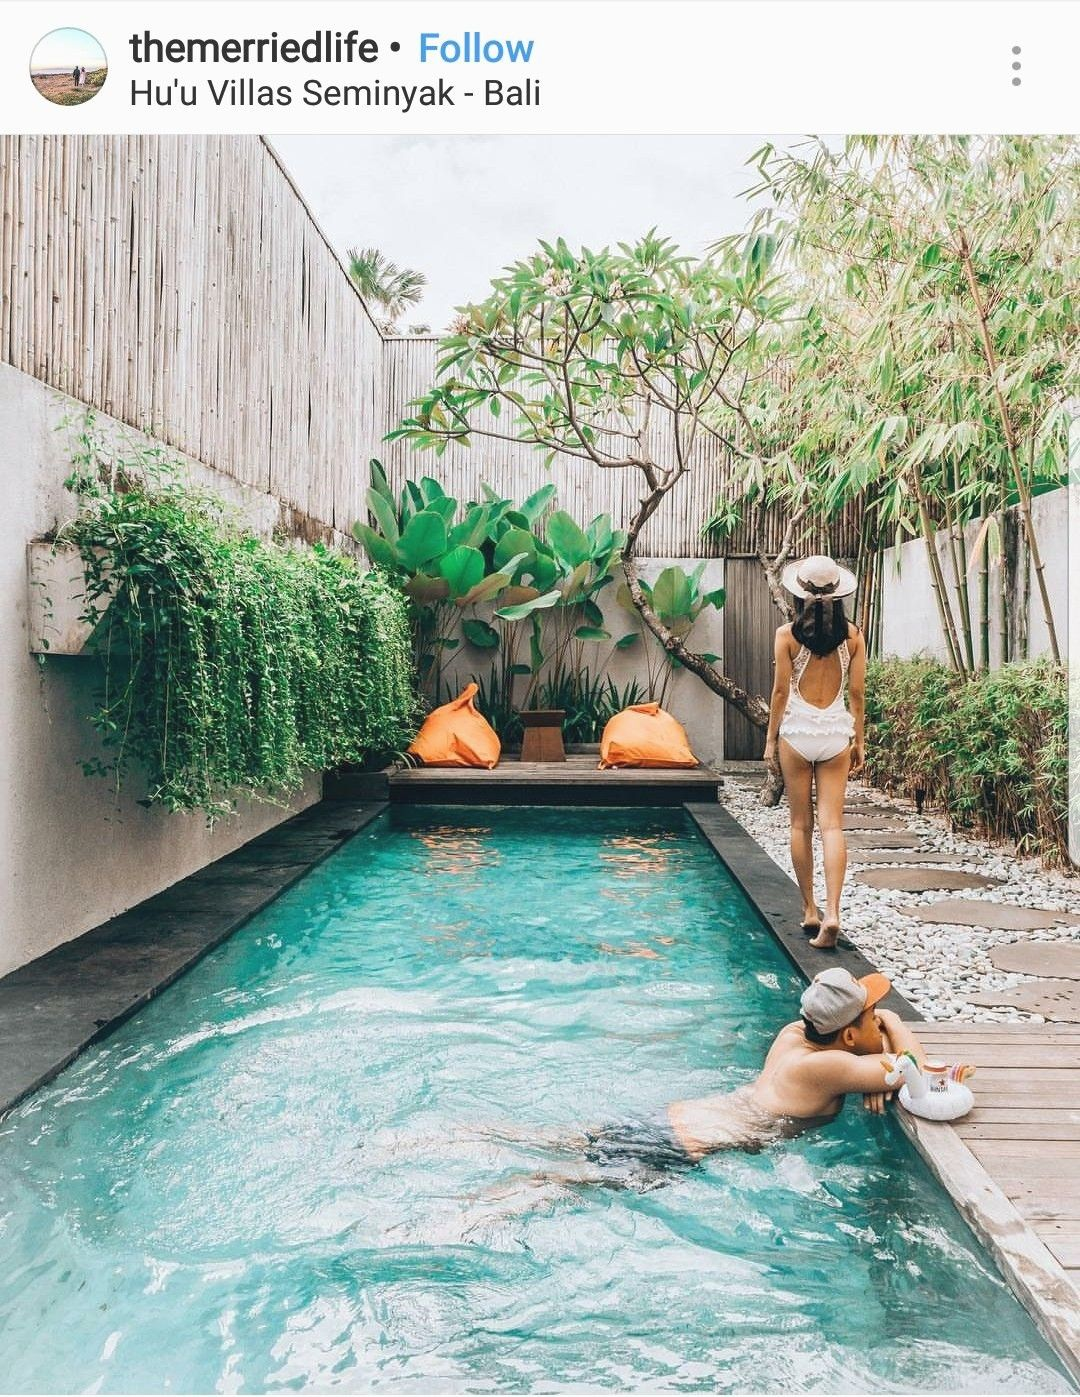 Backyard Pool Ideas Lounging By The Pool Along With Taking A Great Dip Periodically Can Really Make Summ Backyard Pool Swimming Pools Backyard Pool Waterfall